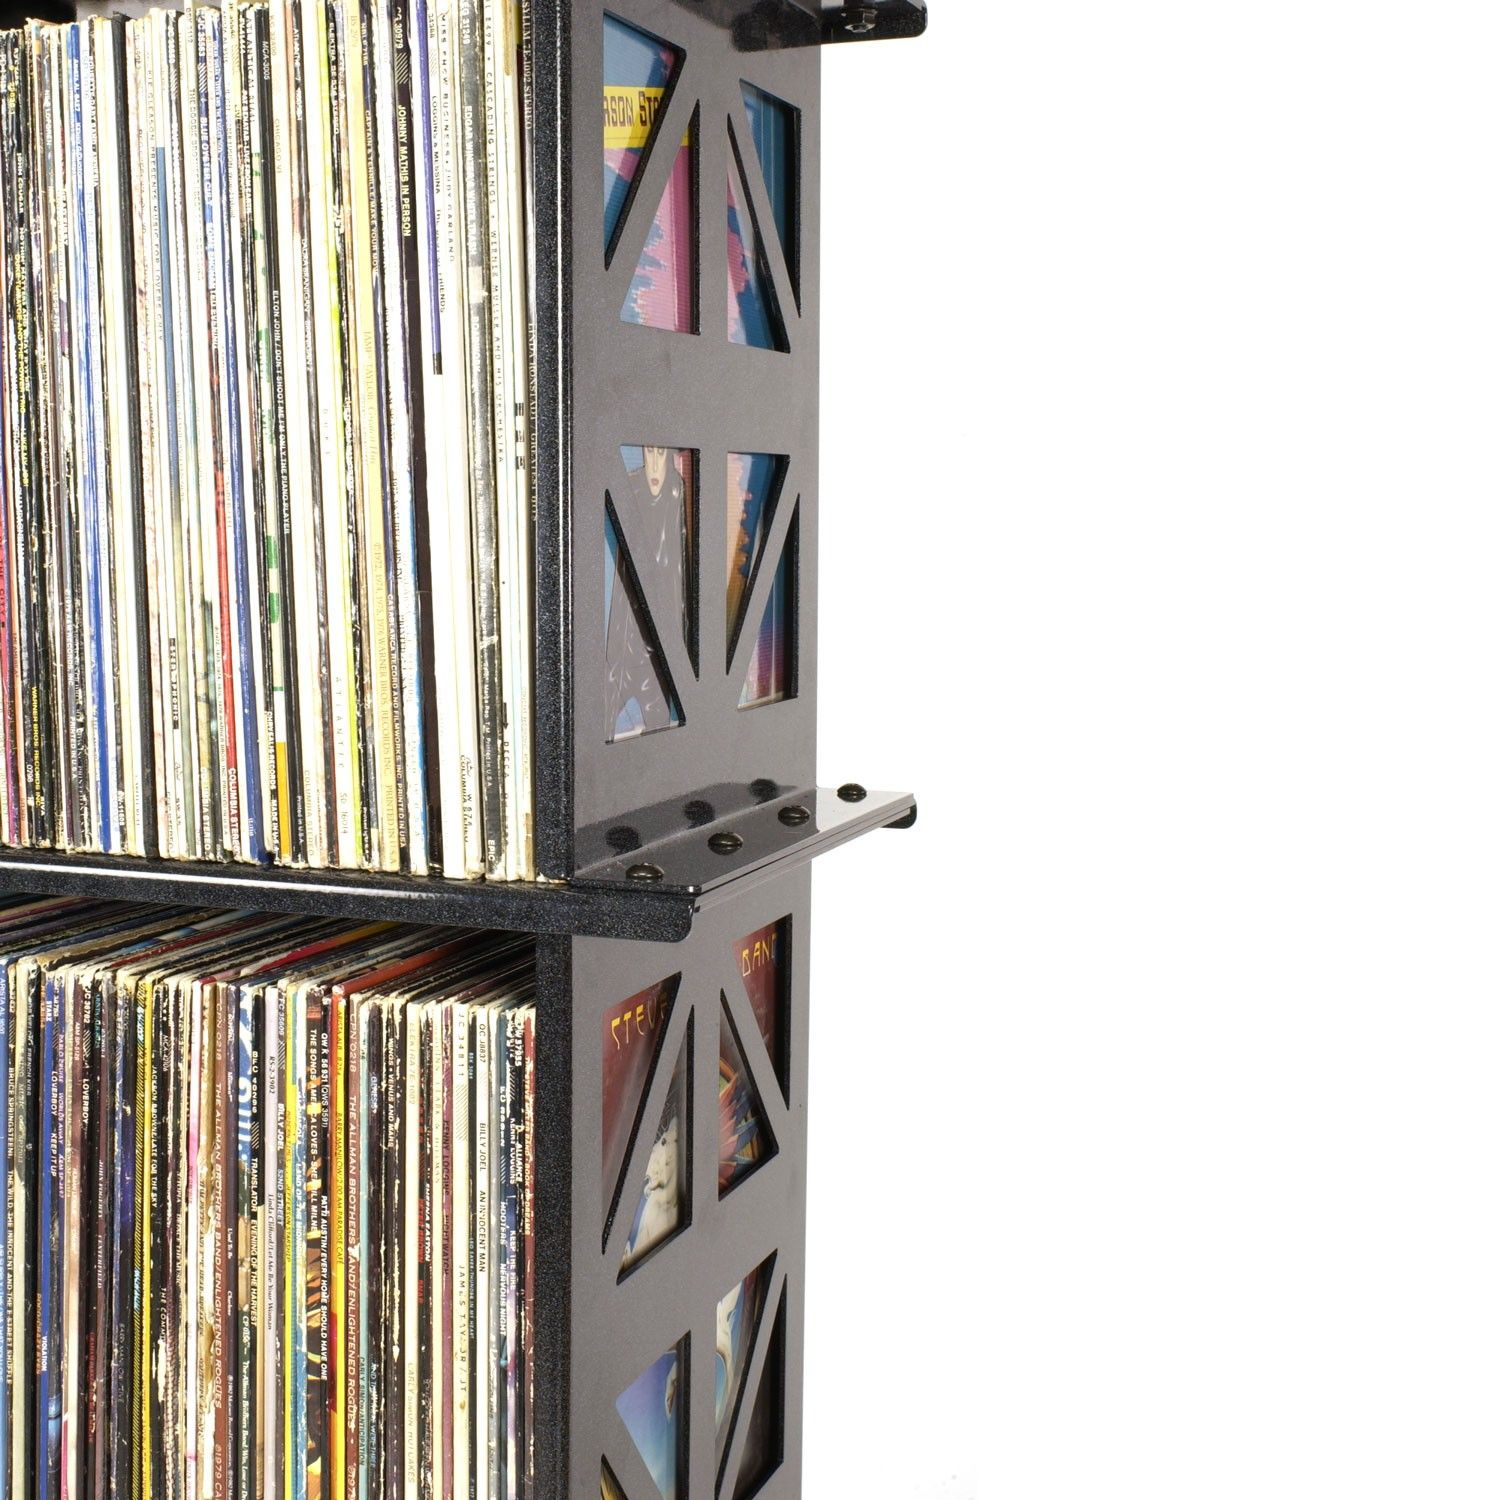 Lp Album Storage Rack (4 Shelves) By Boltz - Lp